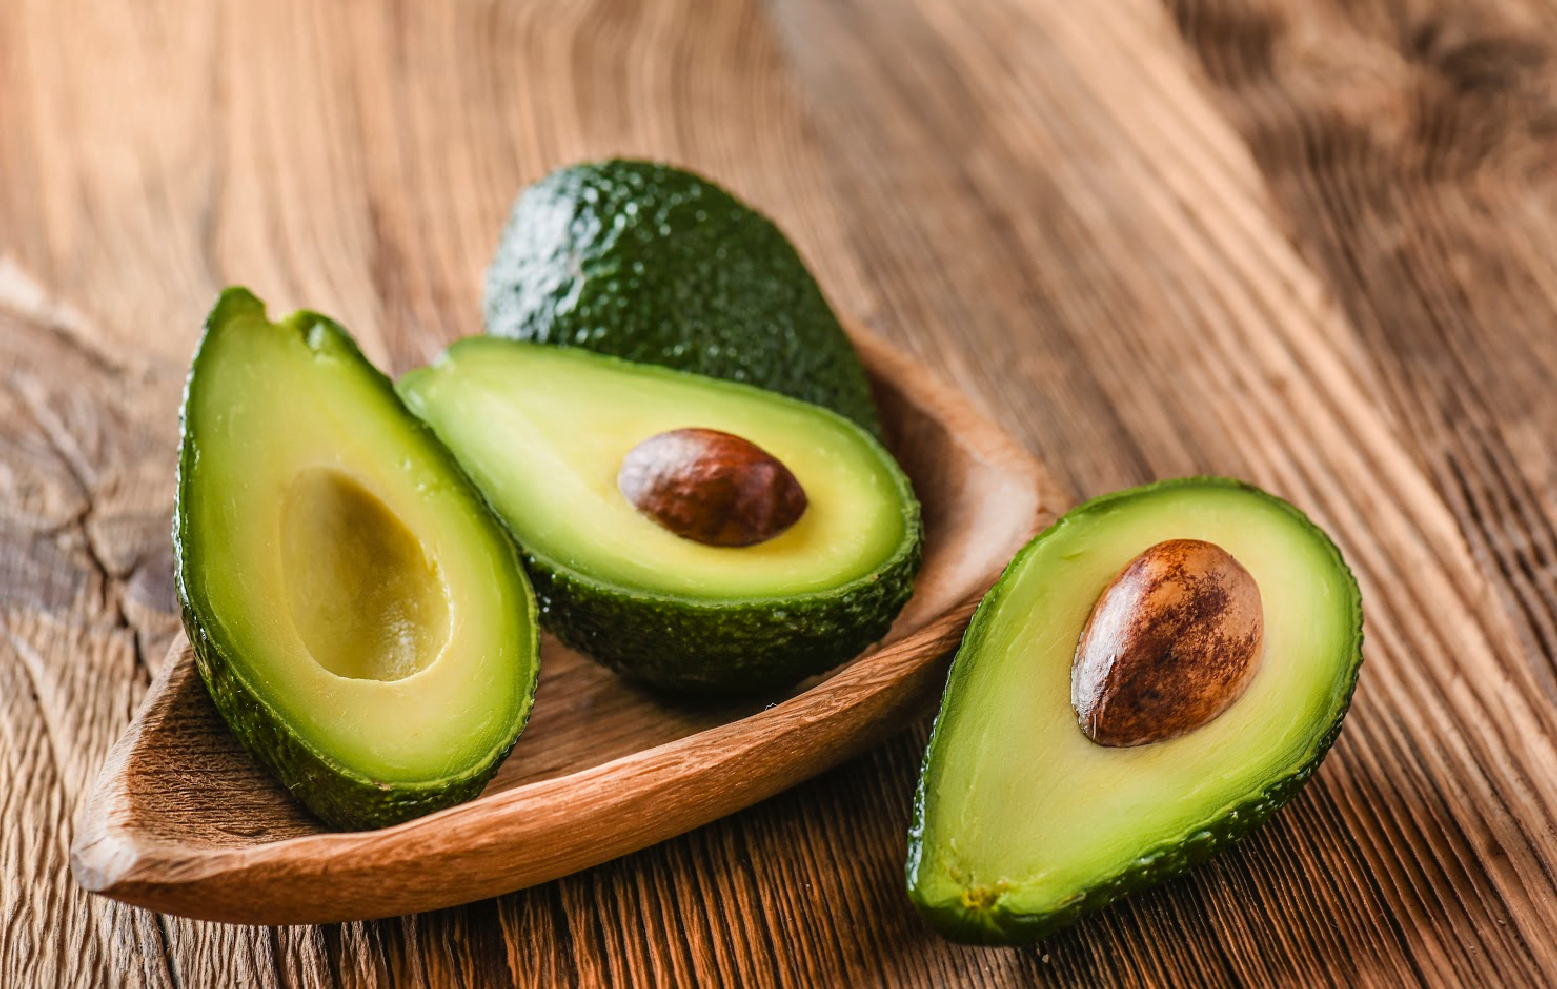 things to know about avocados